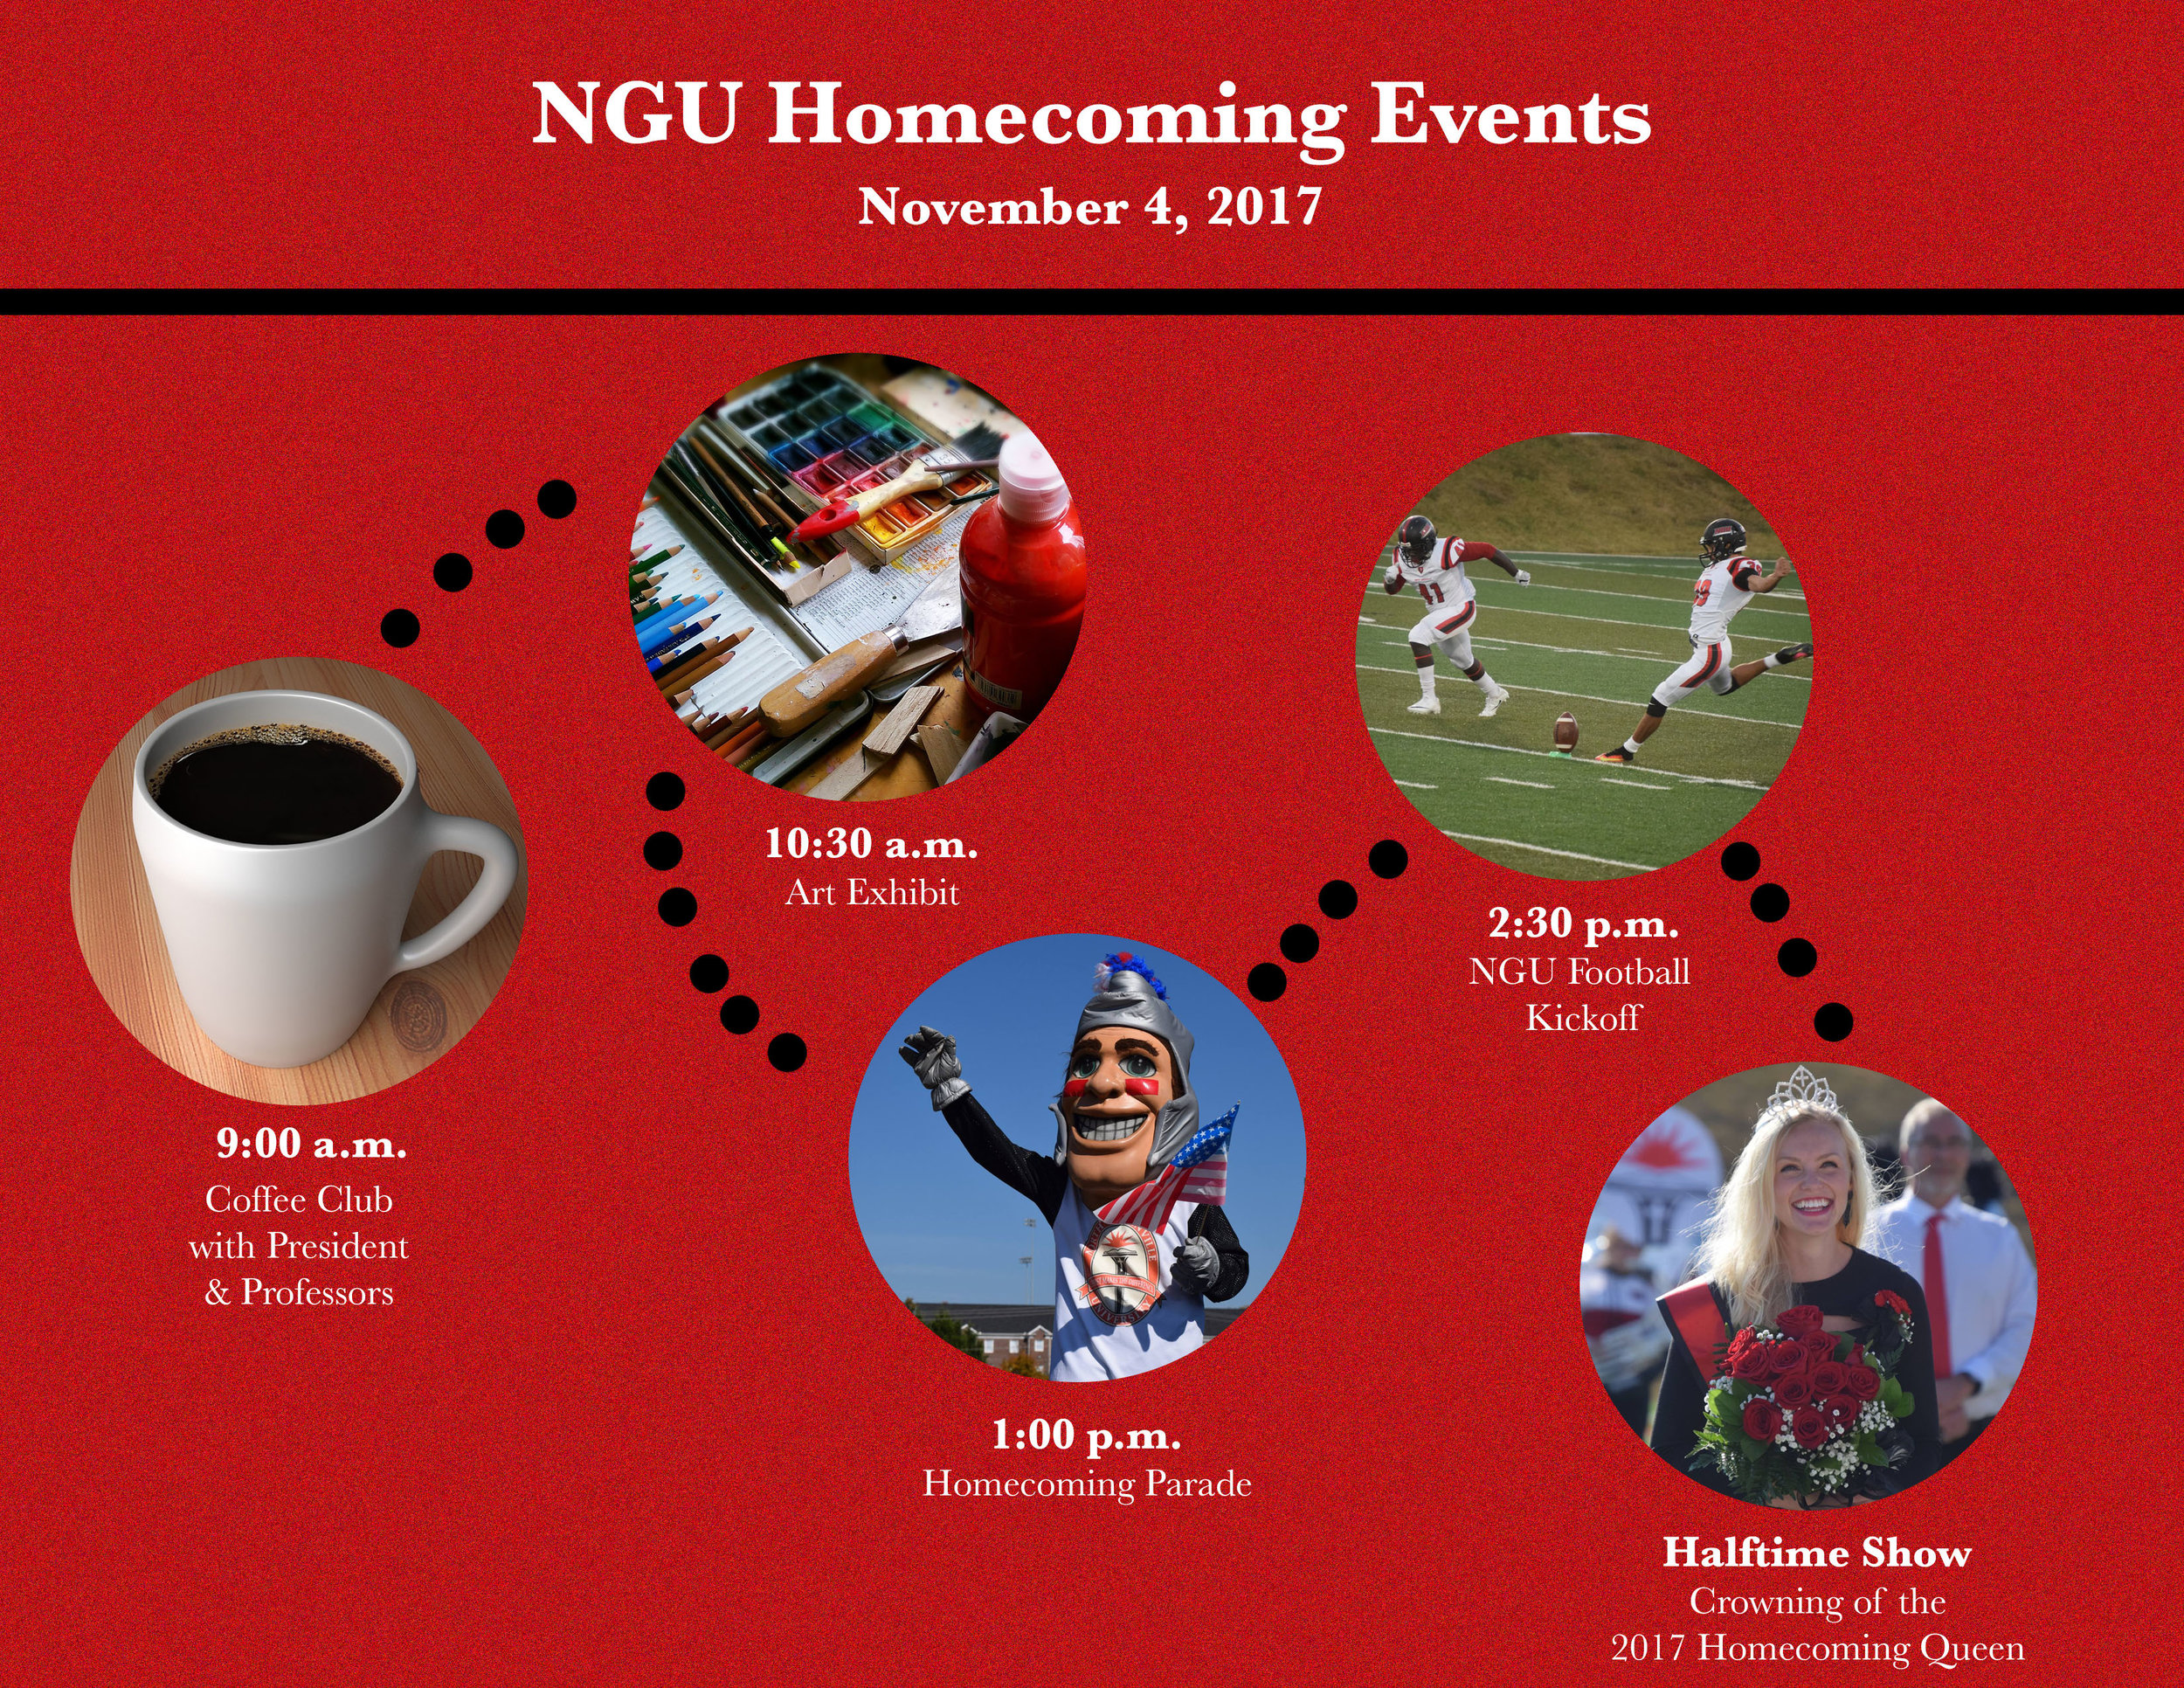 homecoming timeline of events.jpg